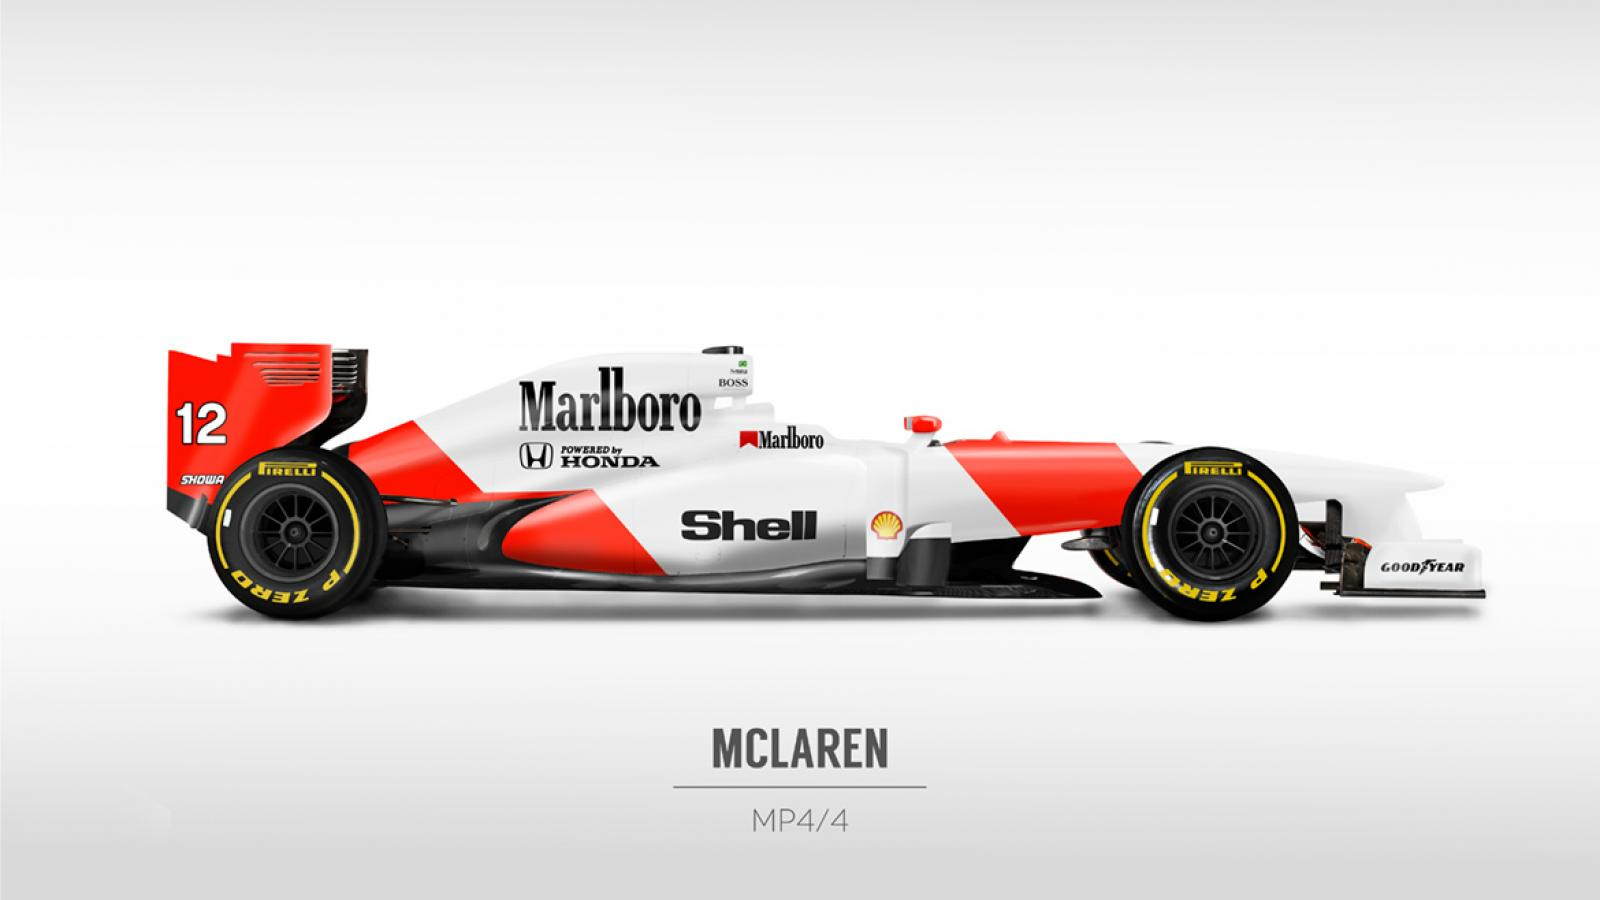 Retro F1 Liveries into Current Cars